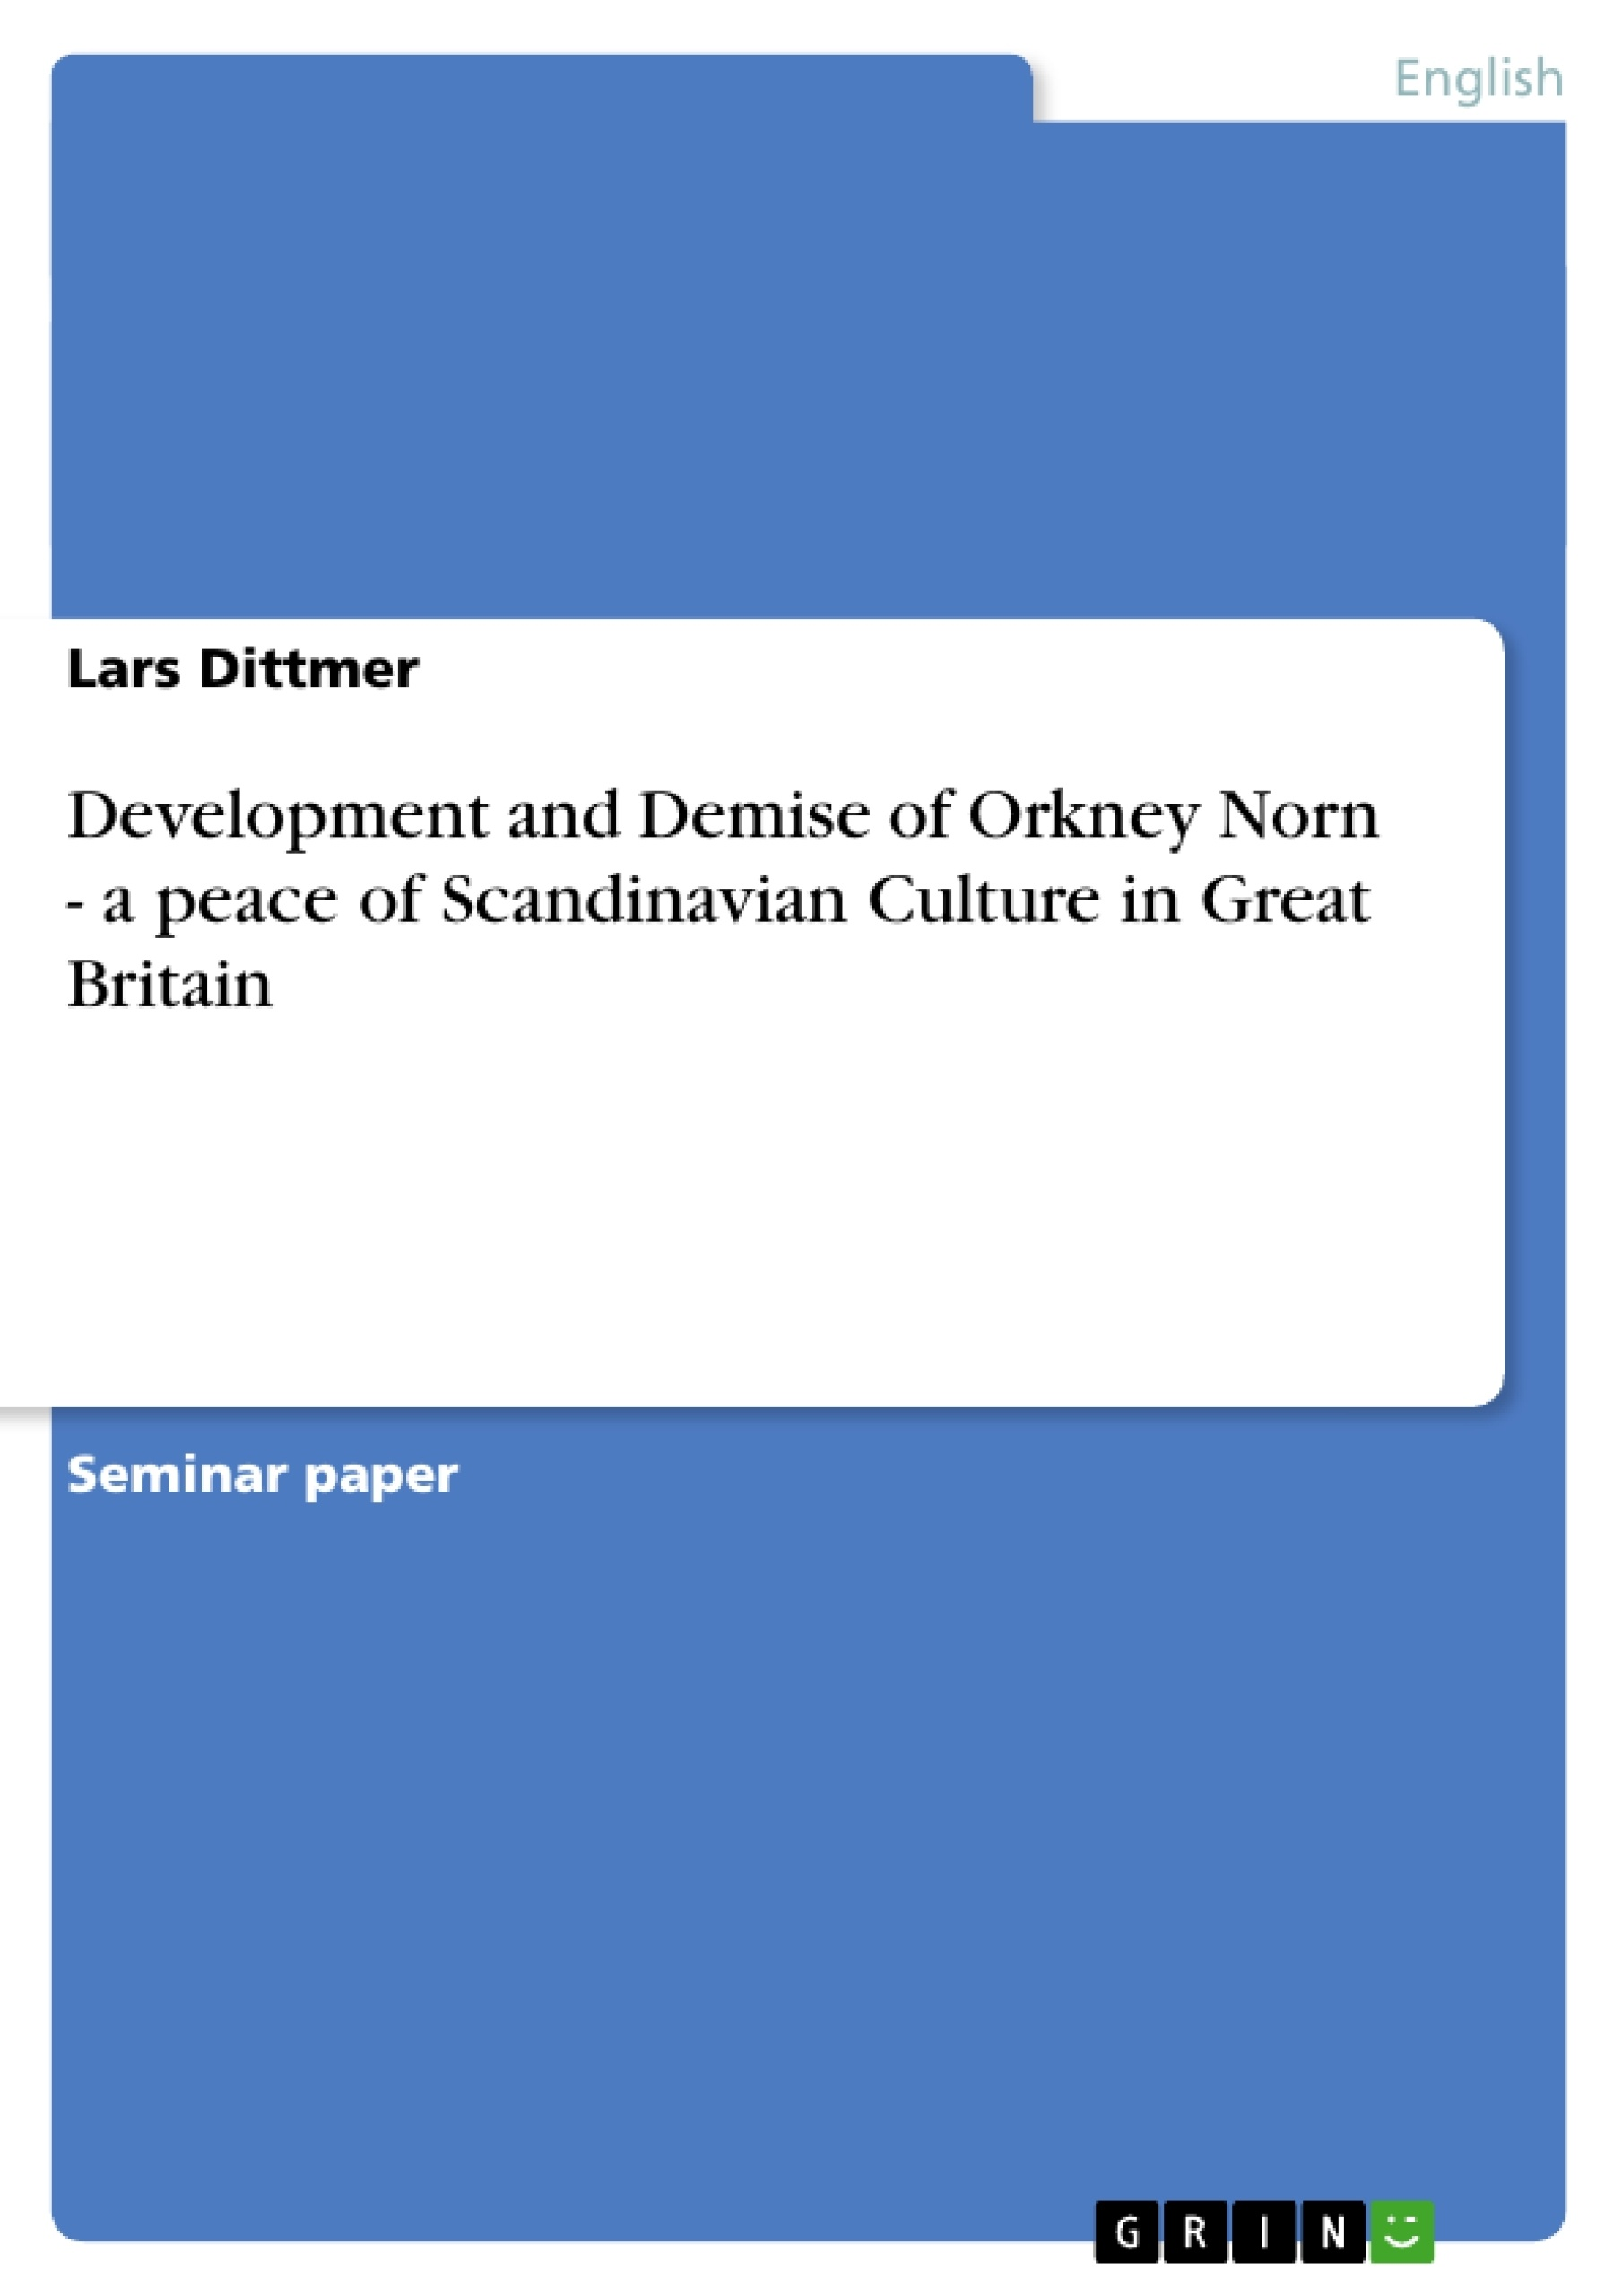 Title: Development and Demise of Orkney Norn - a peace of Scandinavian Culture in Great Britain